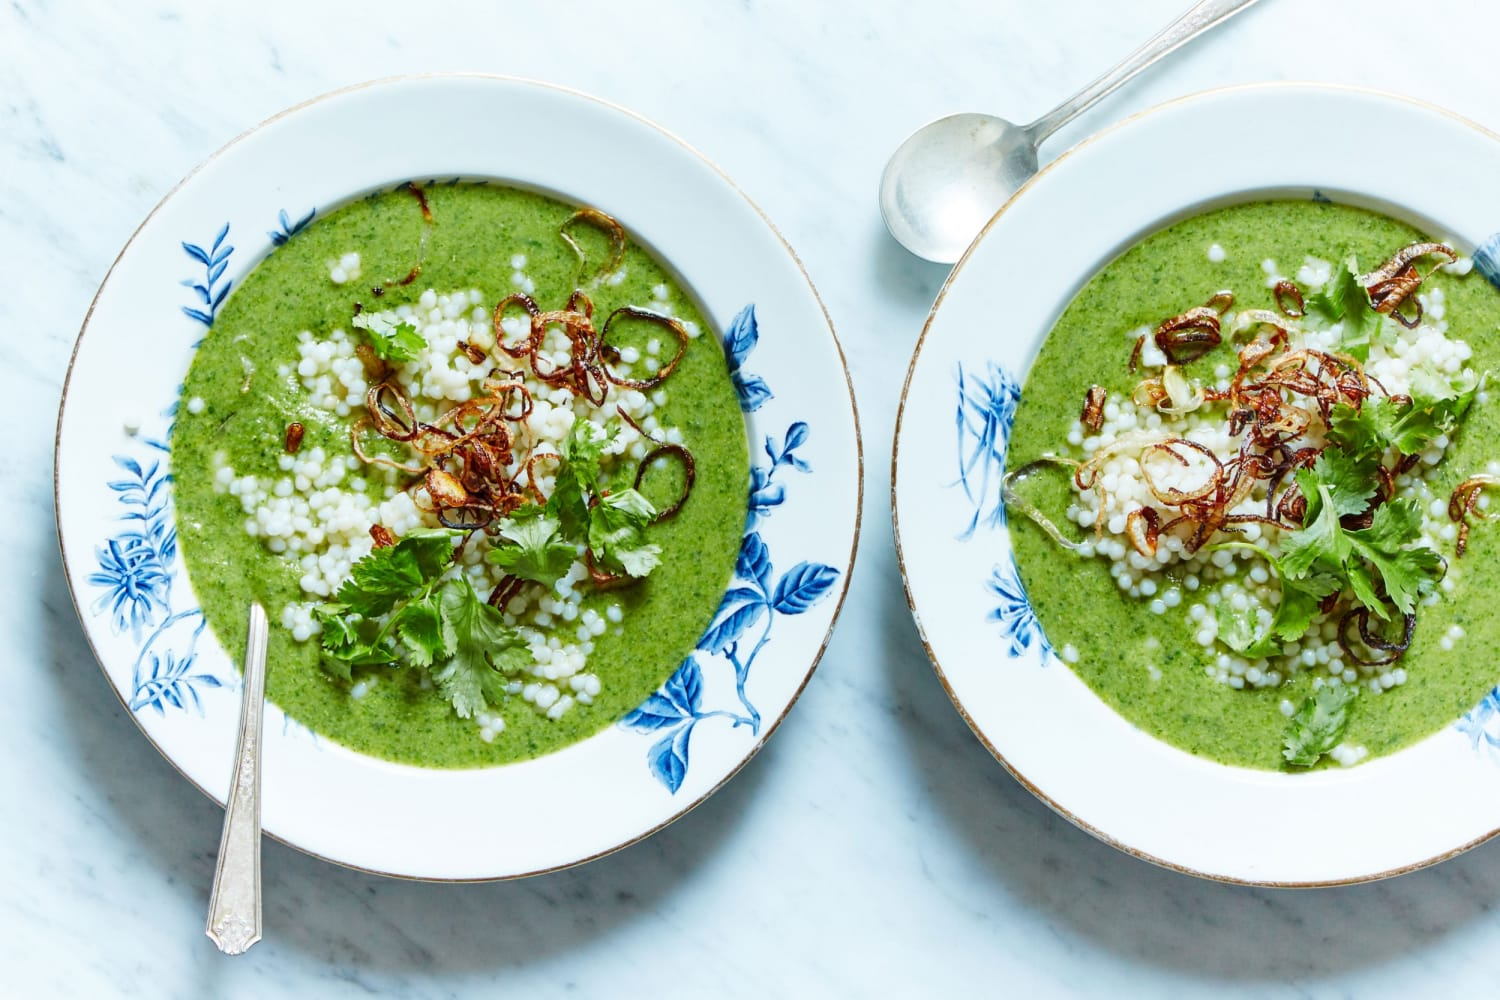 Marley Spoon Broccoli Coconut Soup with Spinach and Shallots